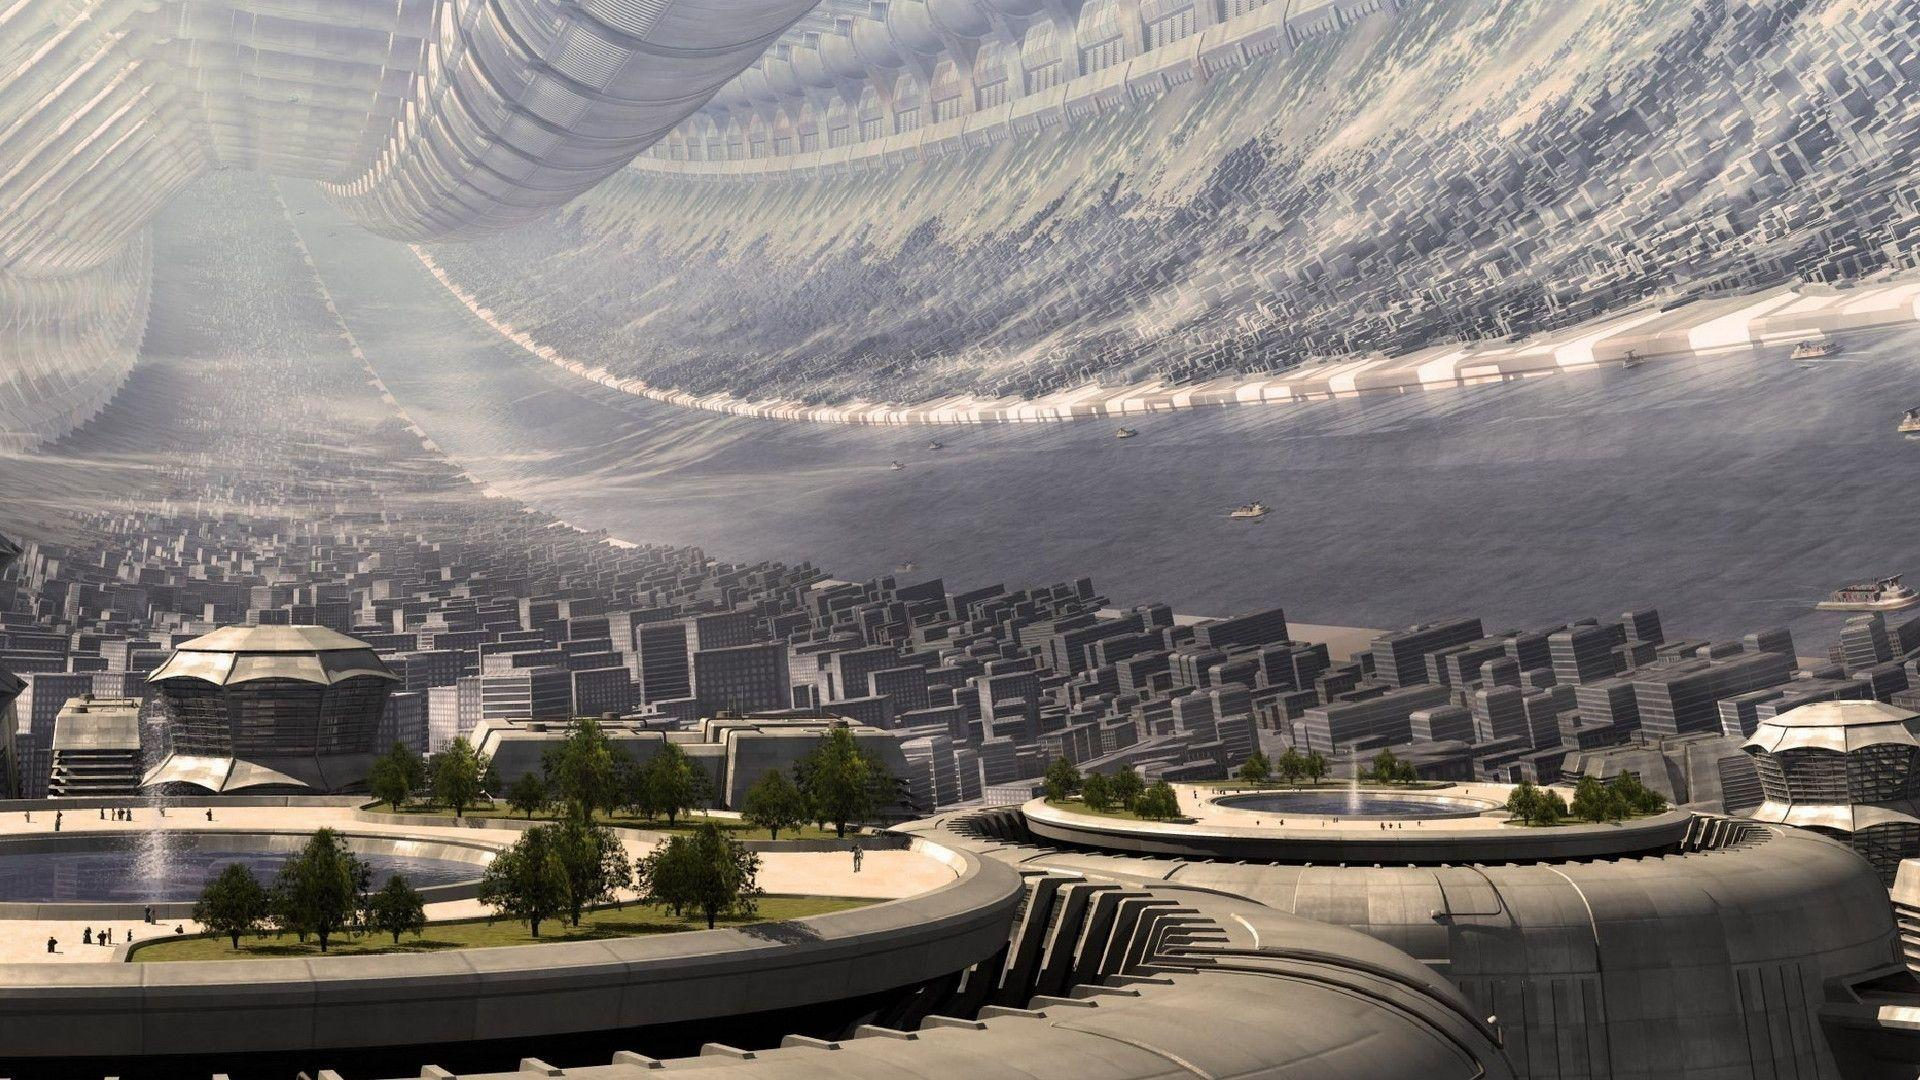 50 Futuristic City Wallpapers